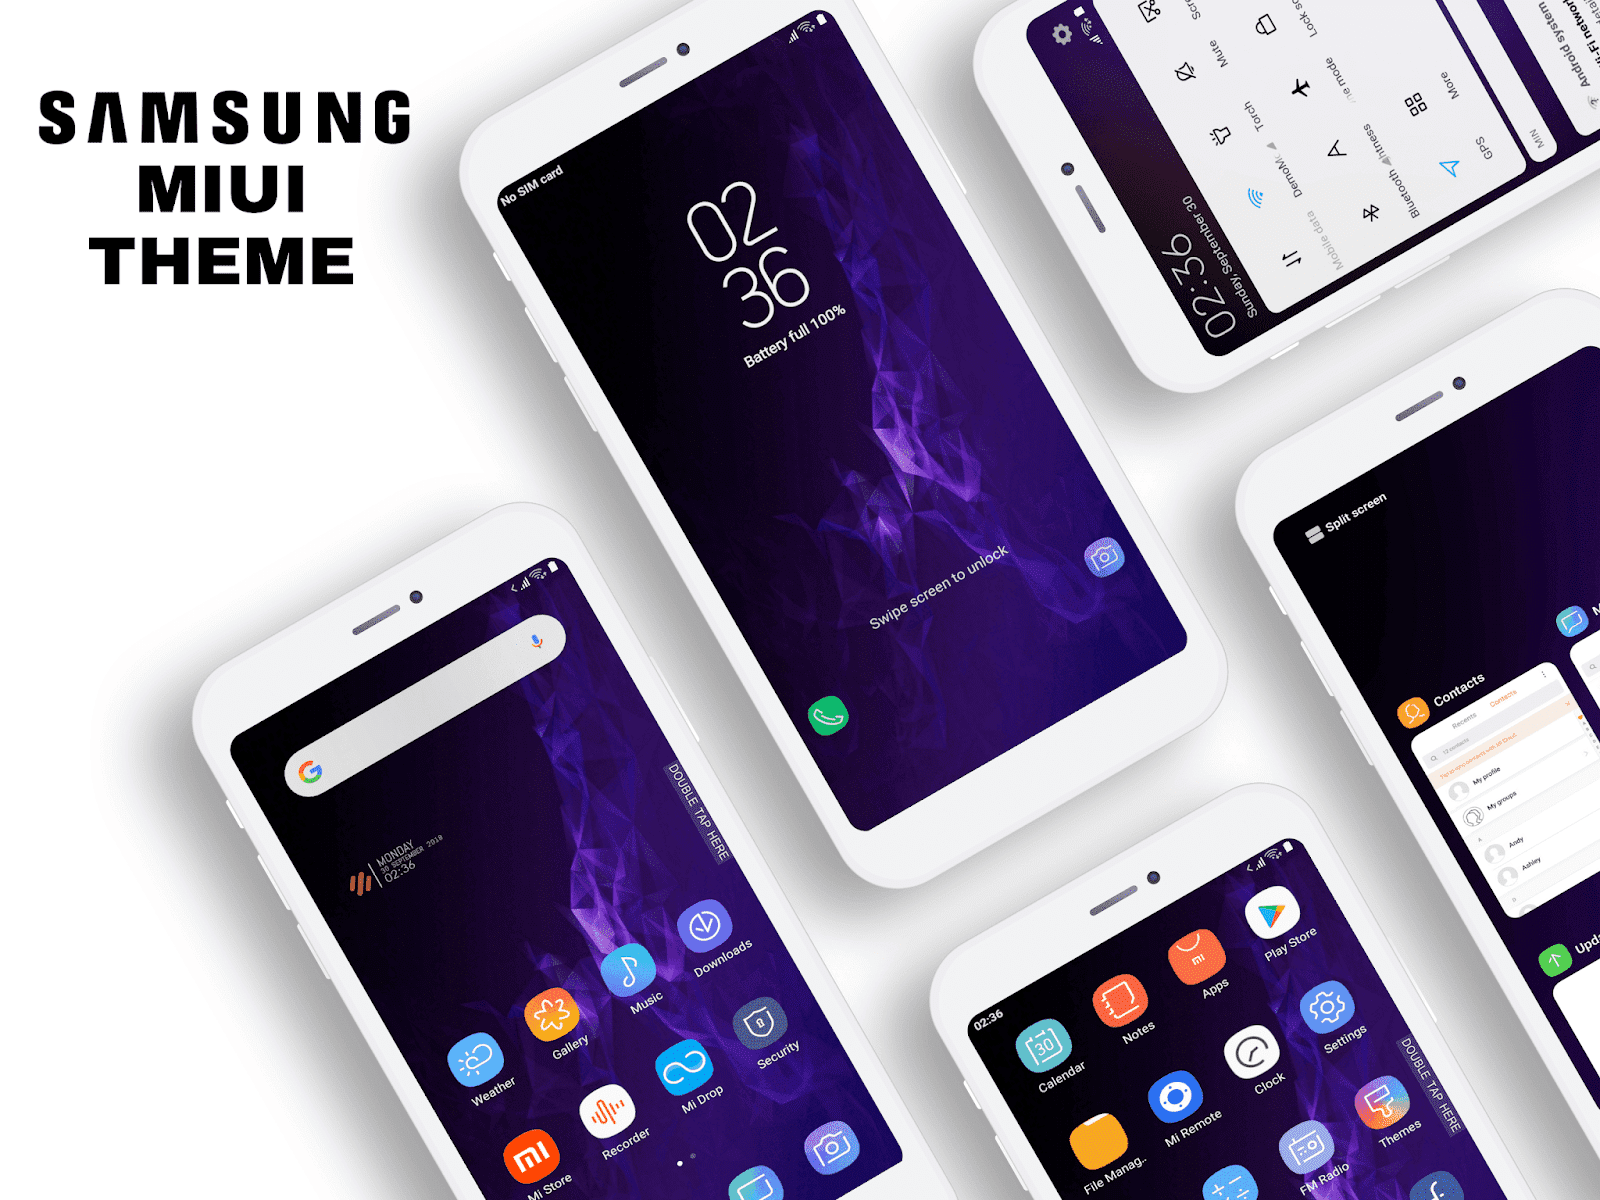 Samsung Galaxy S9 MIUI Theme Download For Xiaomi Mobile - MIUI Themes